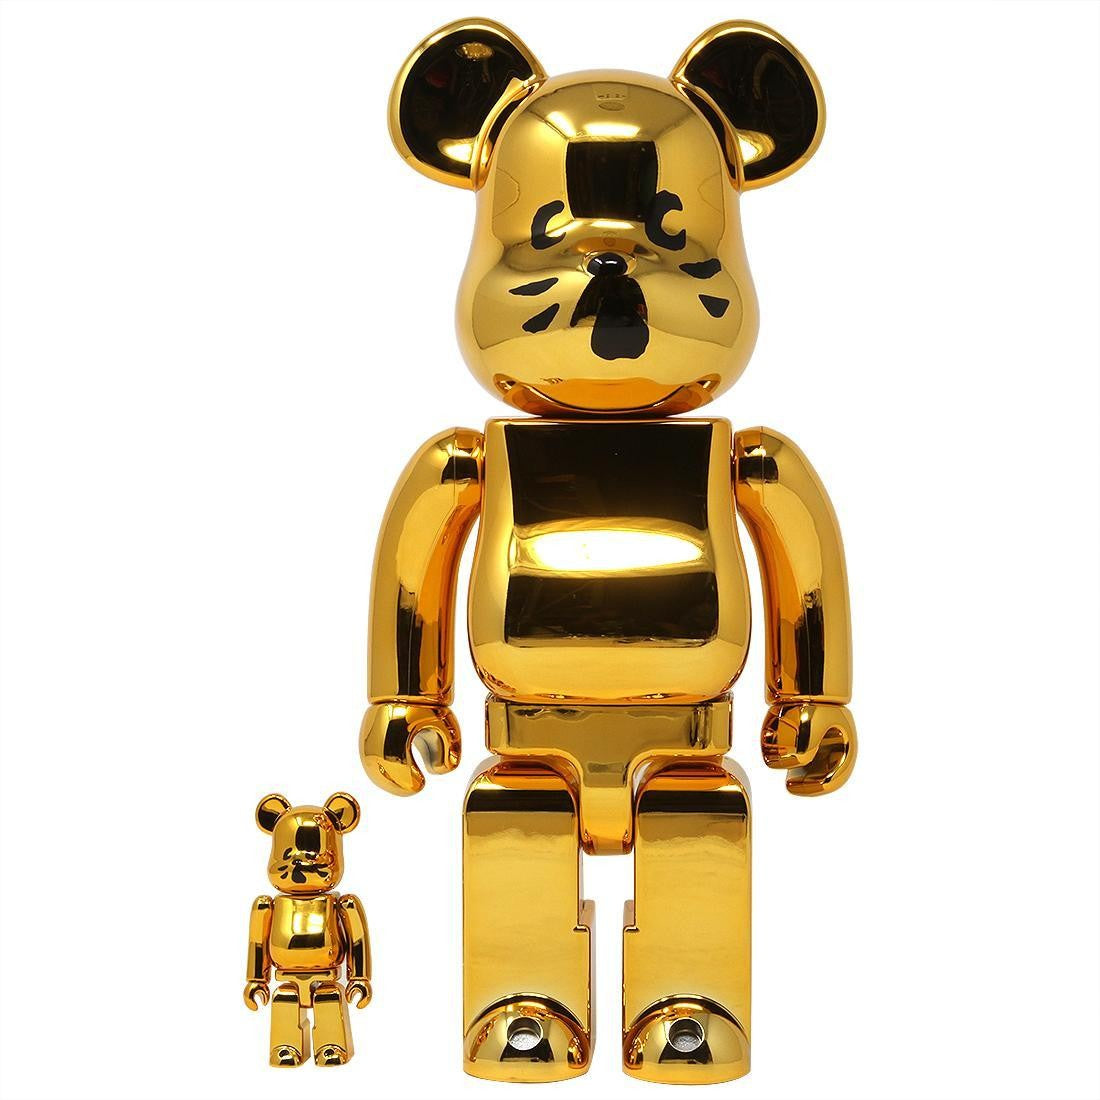 Nya Cat Gold 100% & 400% BEARBRICK SET by Medicom Toy